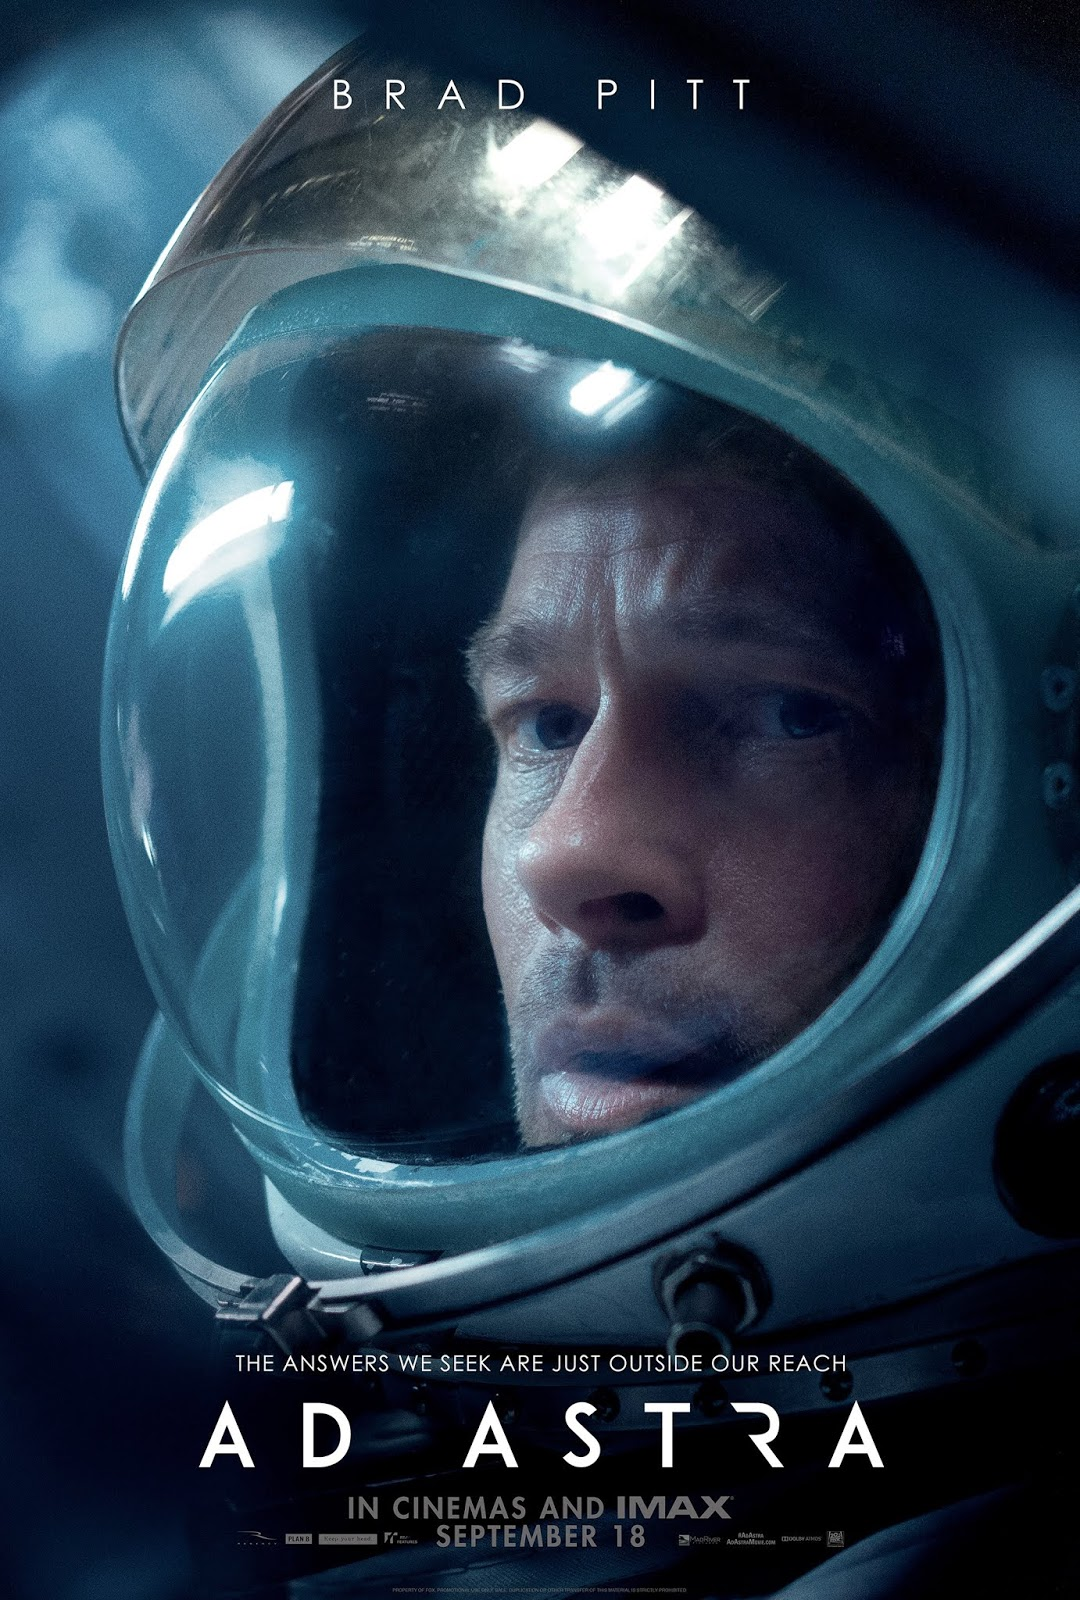 Download Full Movie Ad Astra 2019